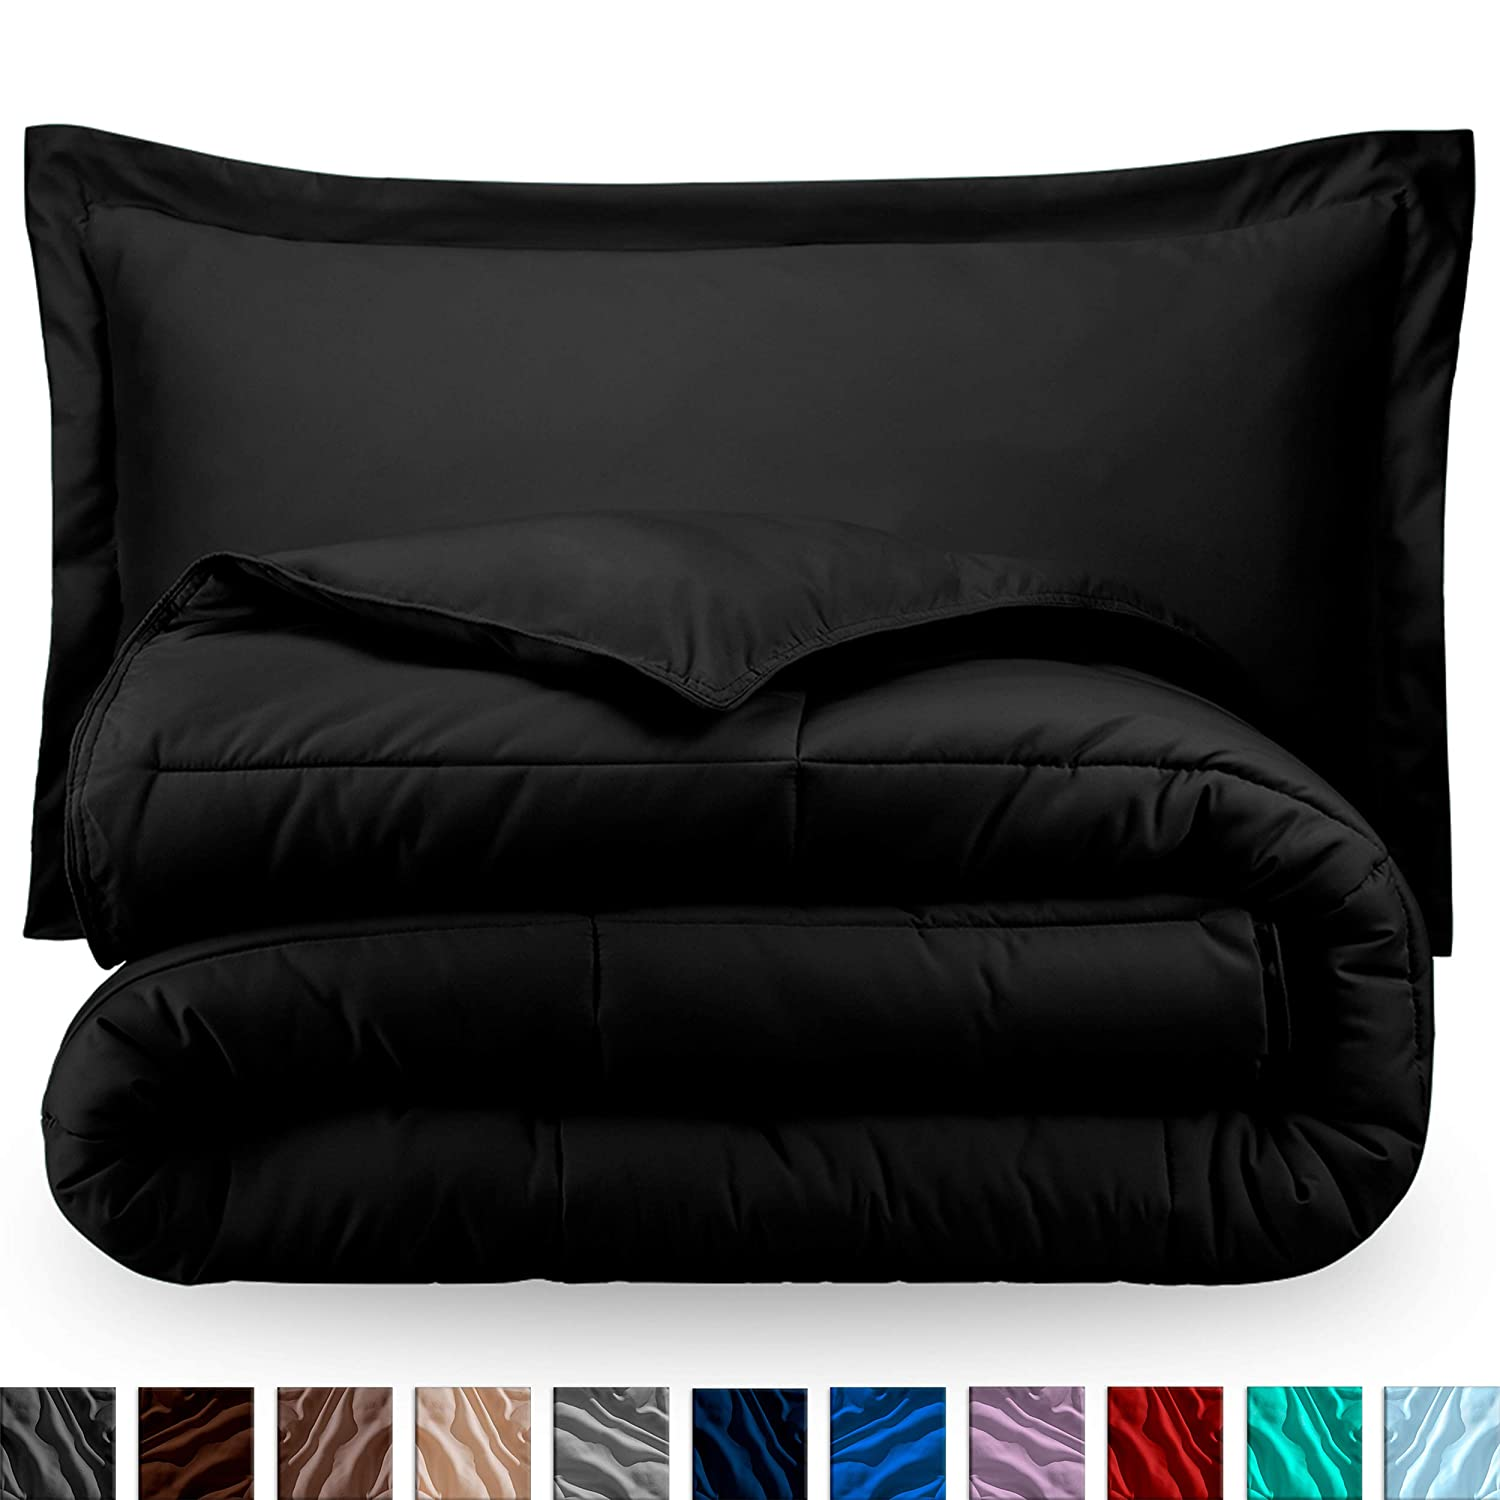 Bare Home Kids Comforter Set - Twin/Twin Extra Long - Goose Down Alternative - Ultra-Soft - Premium 1800 Series - Hypoallergenic - All Season Breathable Warmth (Twin/Twin XL, Black)